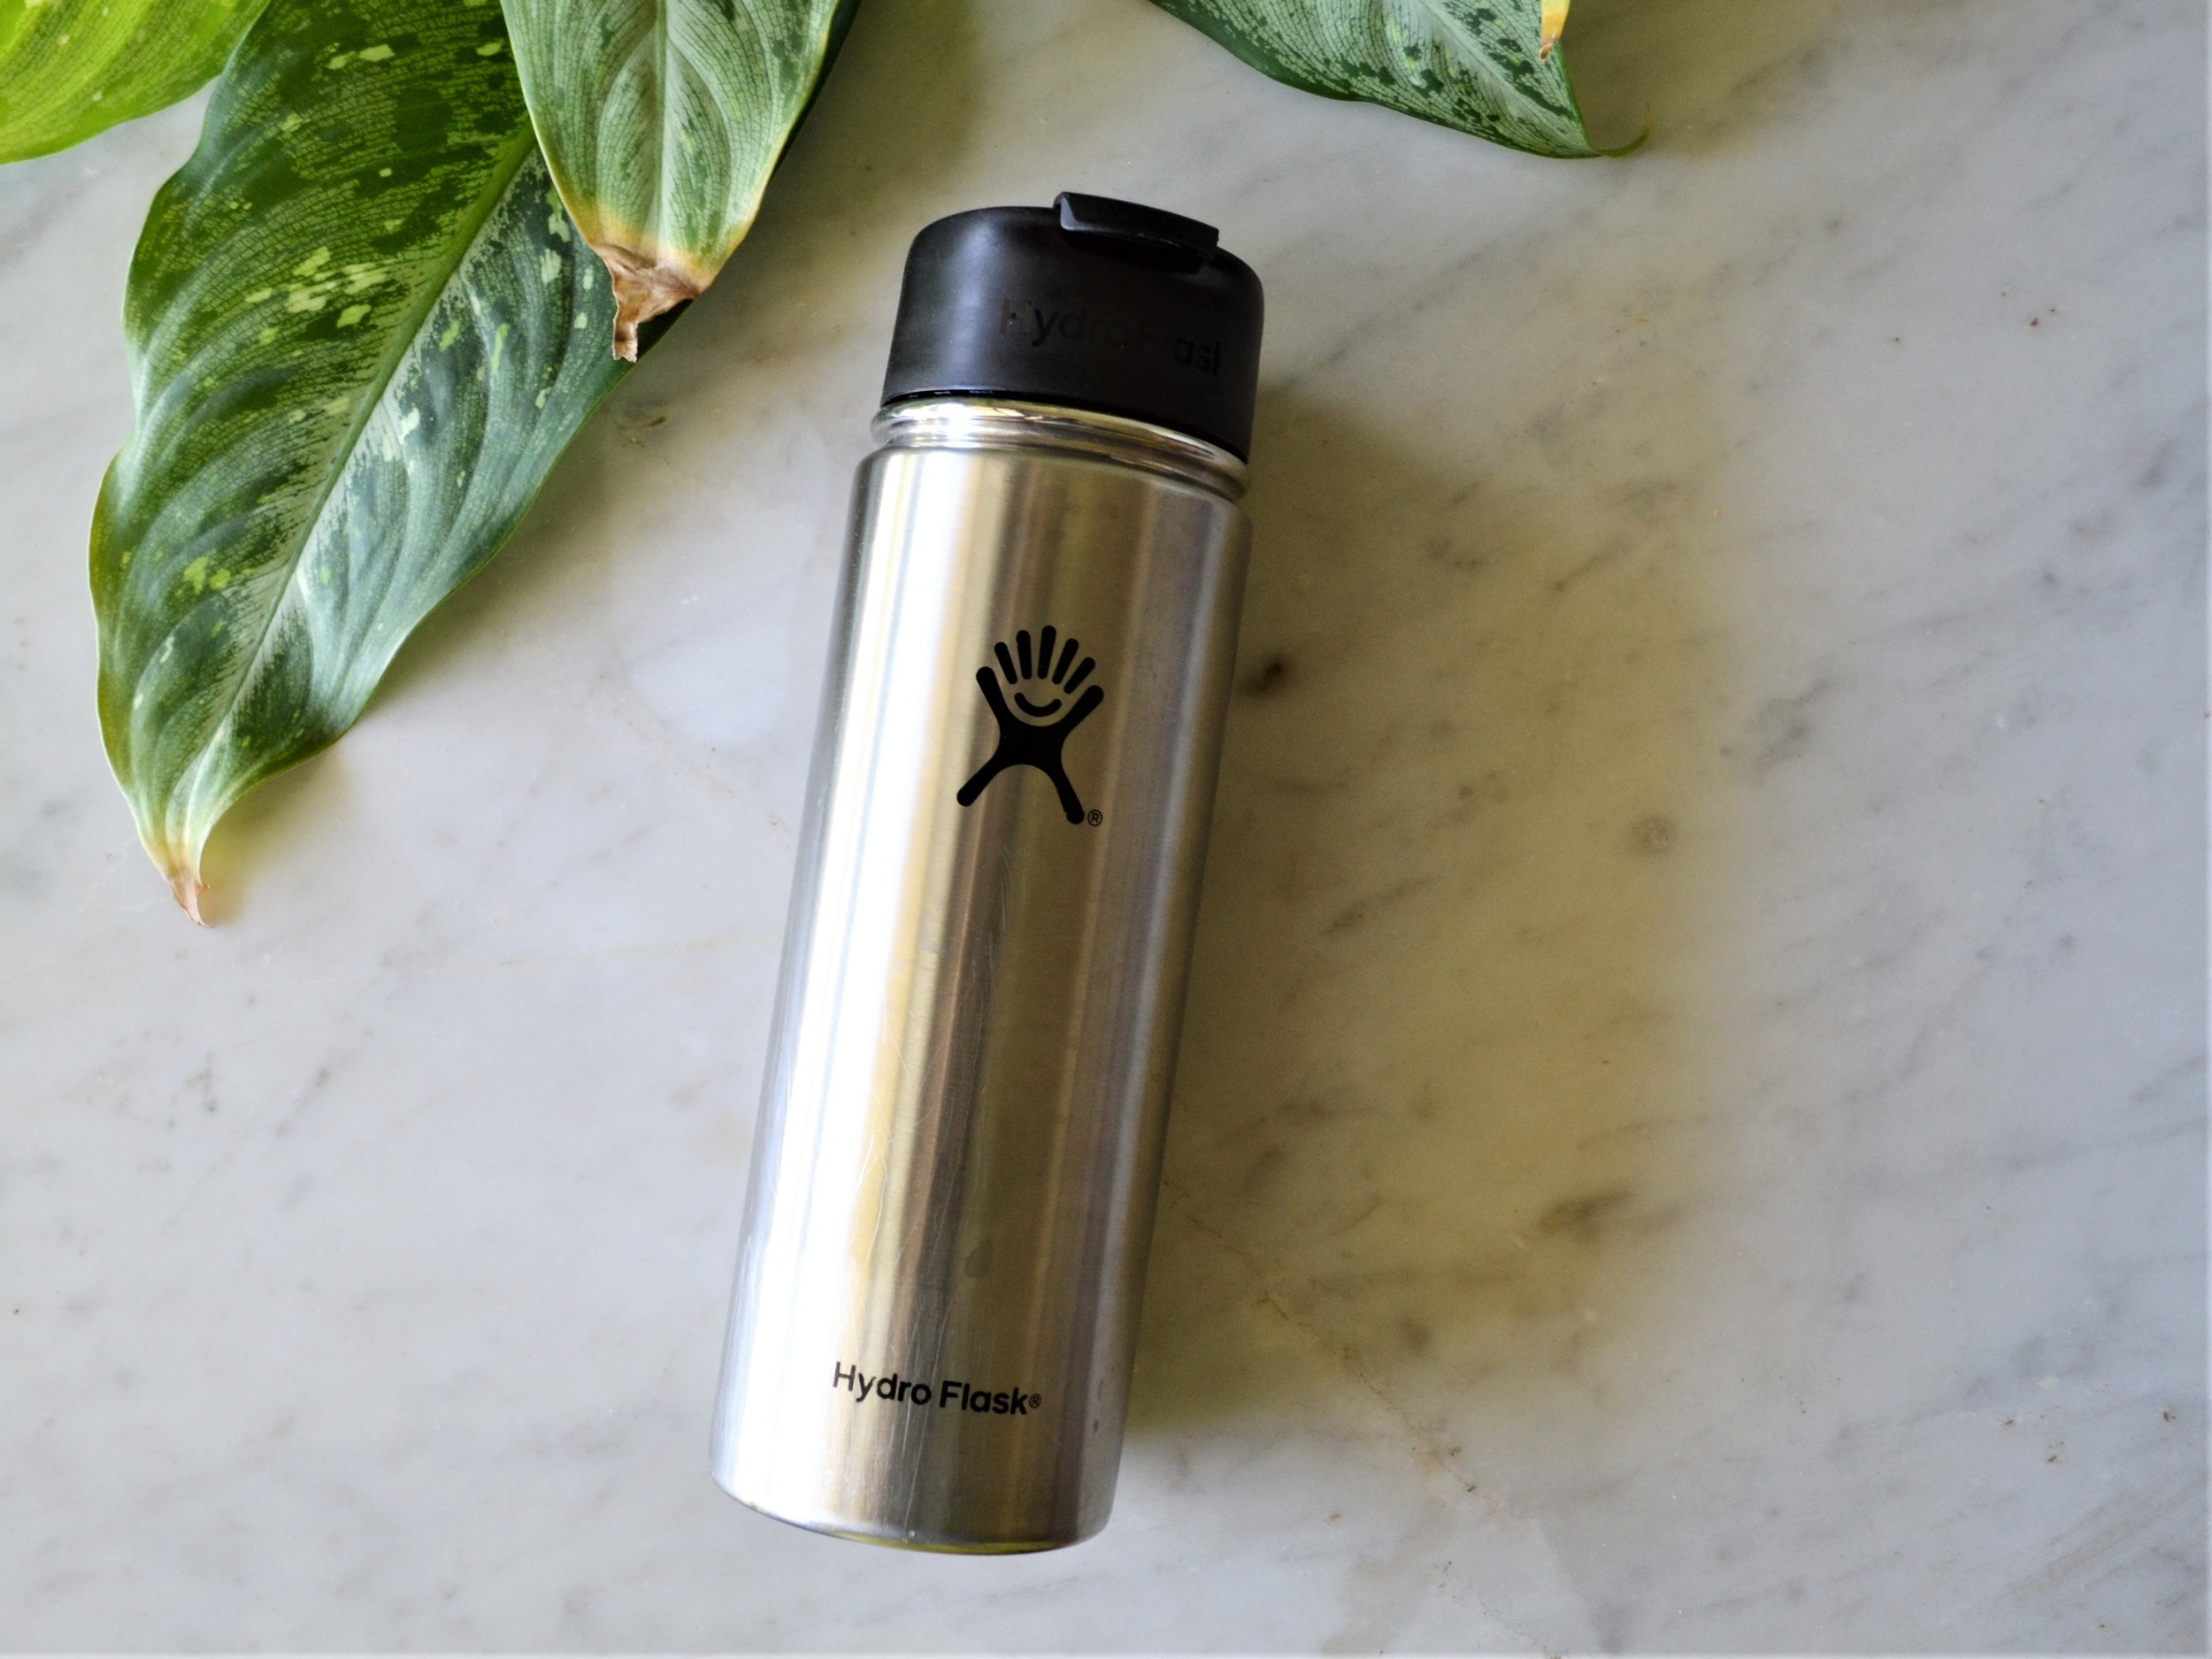 Hydro Flask Thermos - Along with our diets our intake of water can be drastically thrown off course when traveling, leading to dehydration and less energy. Make sure to bring along some type of re-usable water bottle or thermos to re-fill along the way. I love using my Hydro Flask thermos because of it's air-tight lid (a.k.a no spills!) and ability to use it for hot or cold beverages.